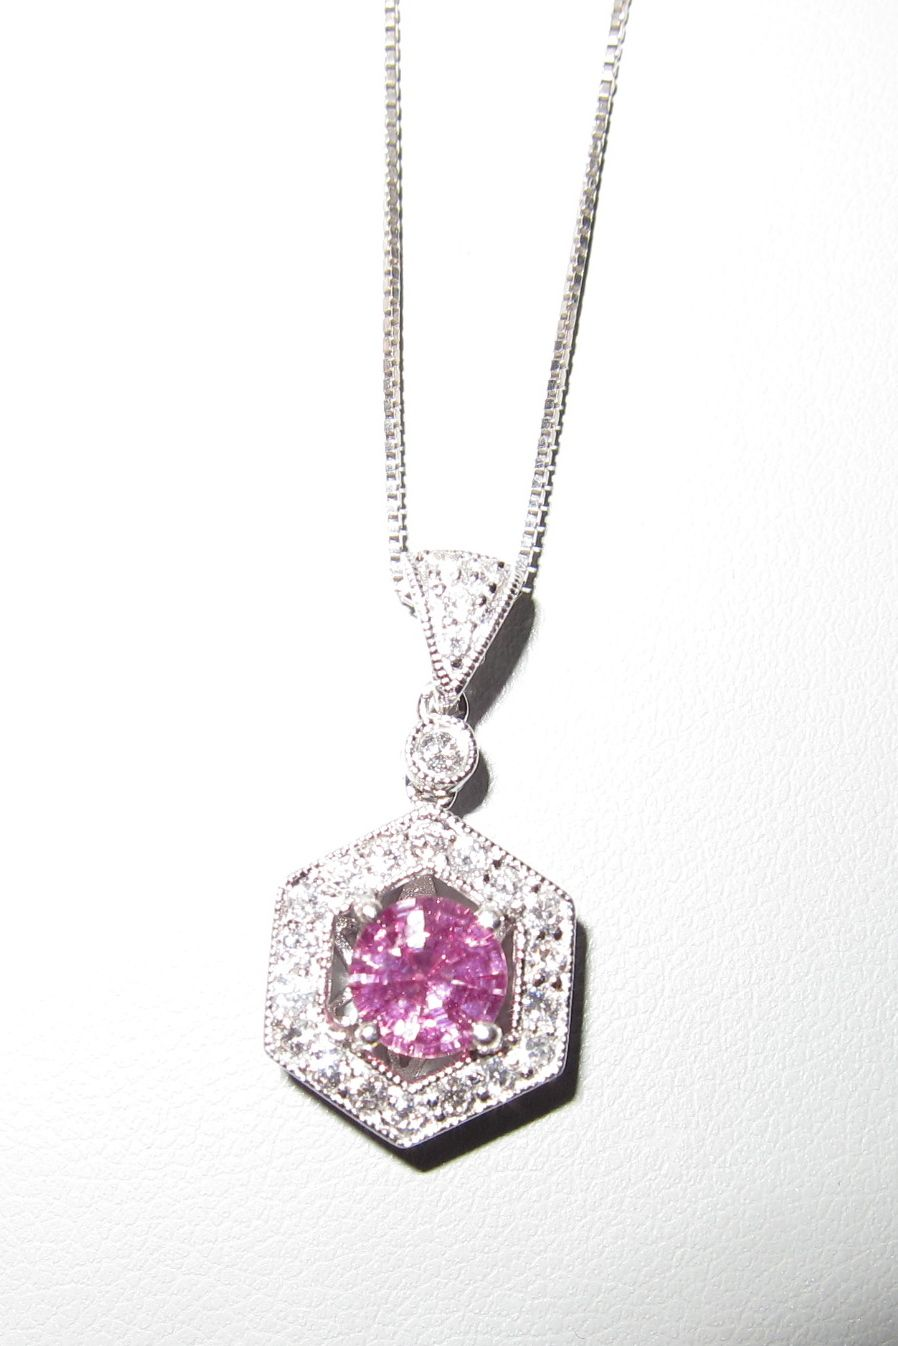 My 10 Yr Anniversary Gift I Love Pink Sapphires Pink Sapphire